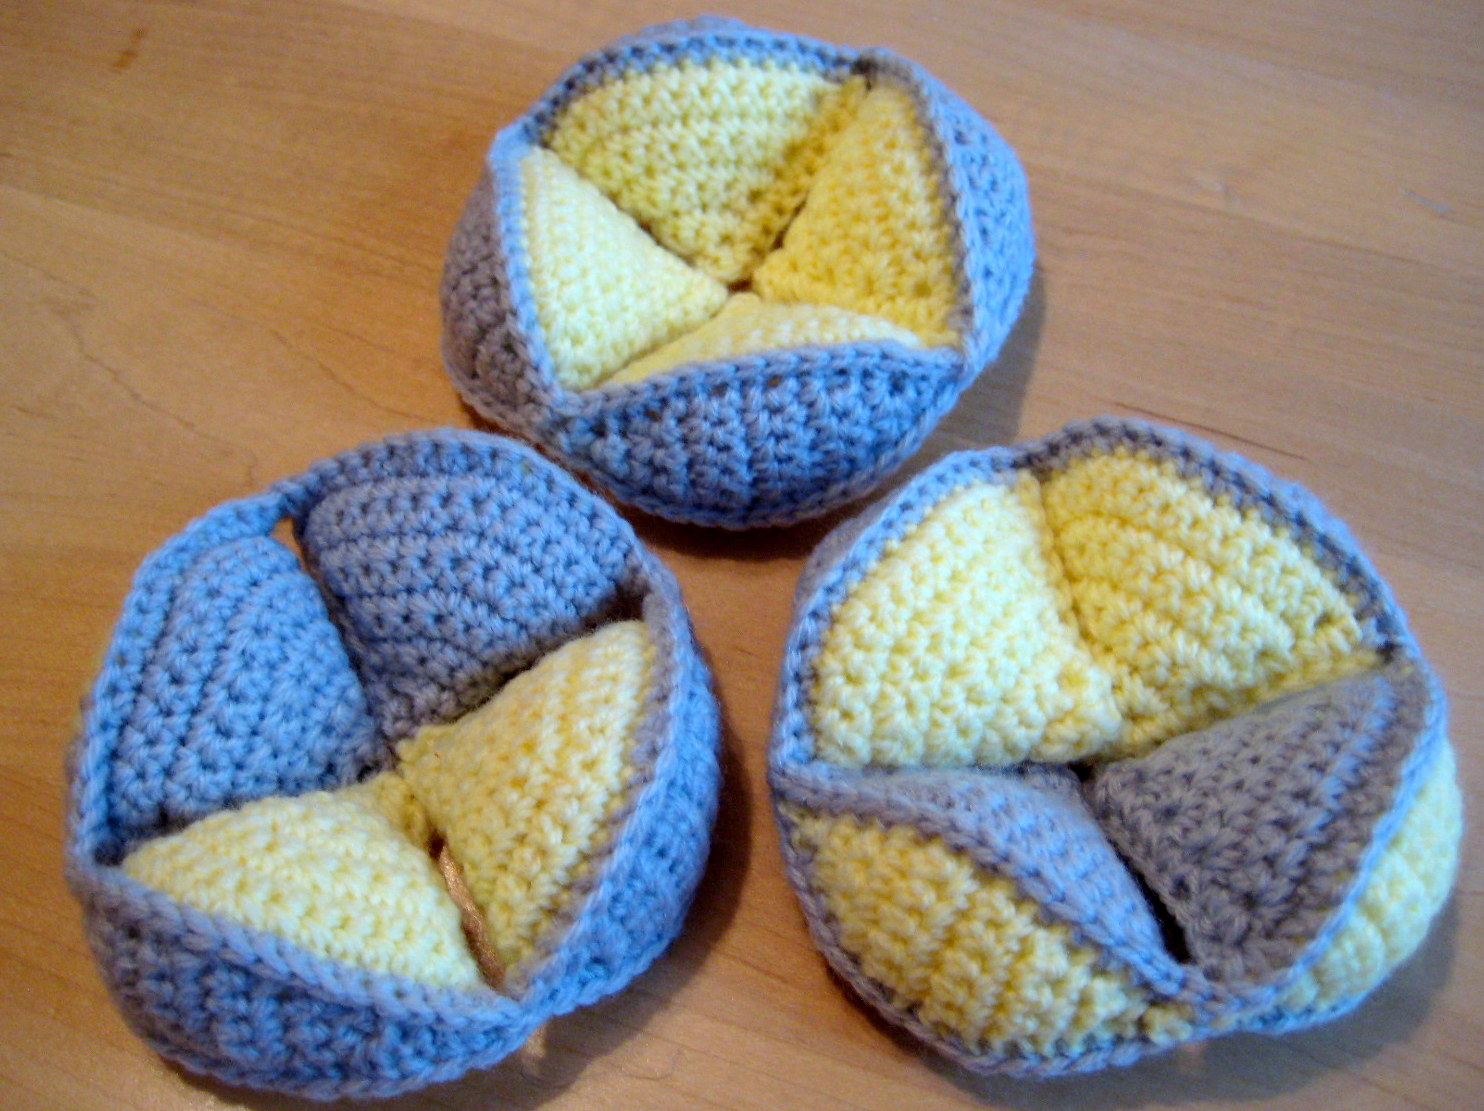 Crochet Ball Pattern Crochet Puzzle Ball Make My Day Creative